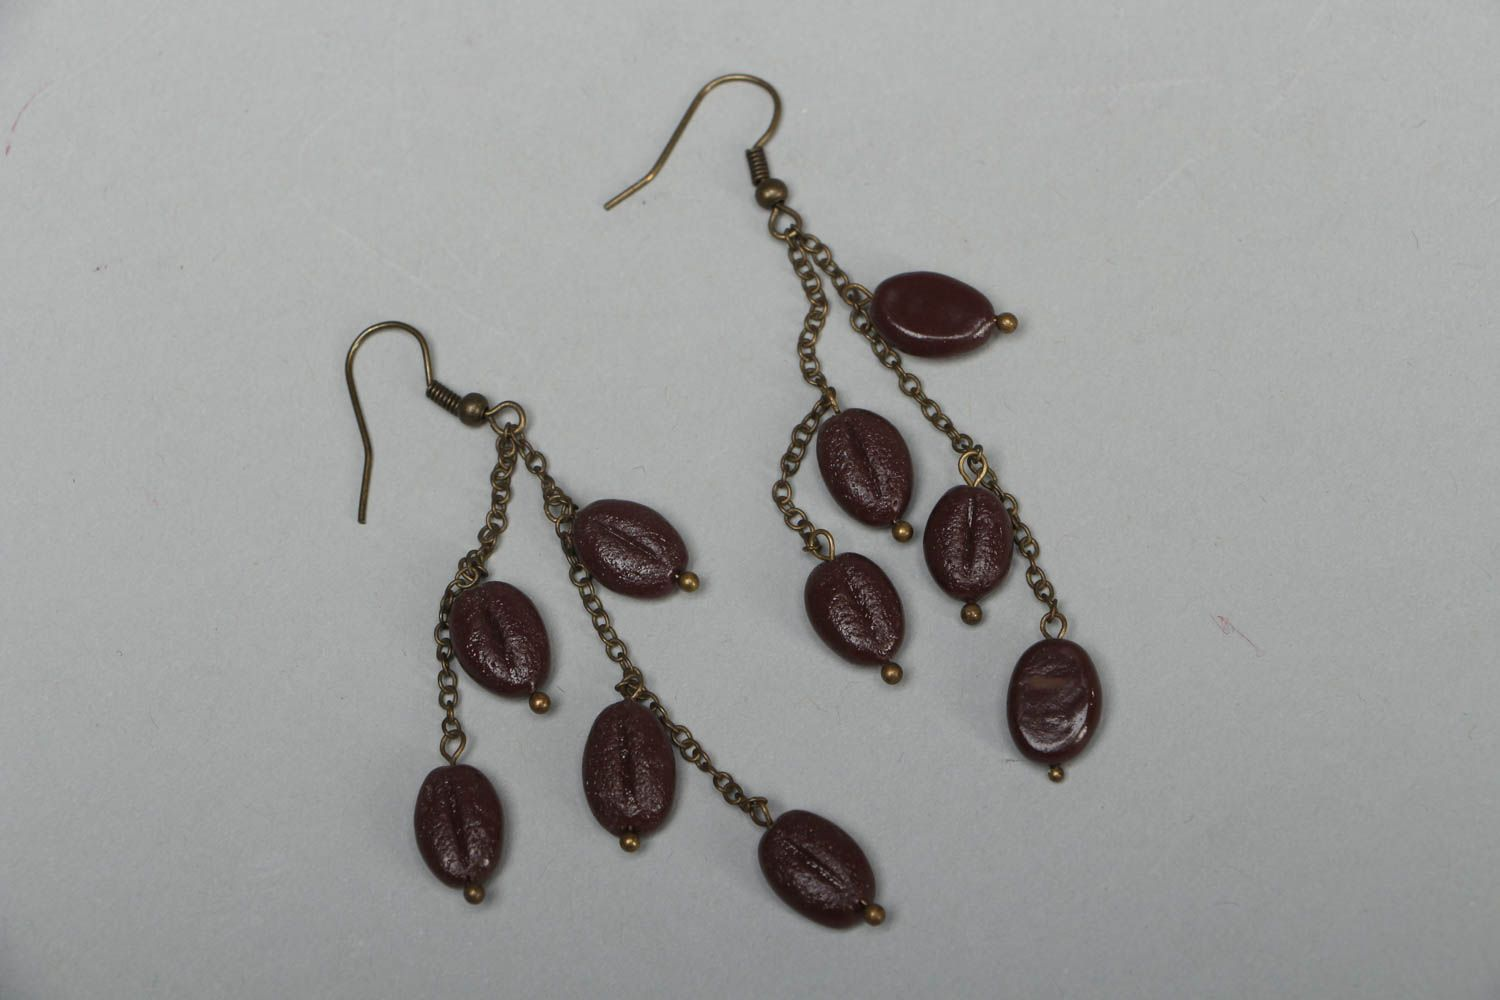 Unusual earrings with plastic charms photo 1